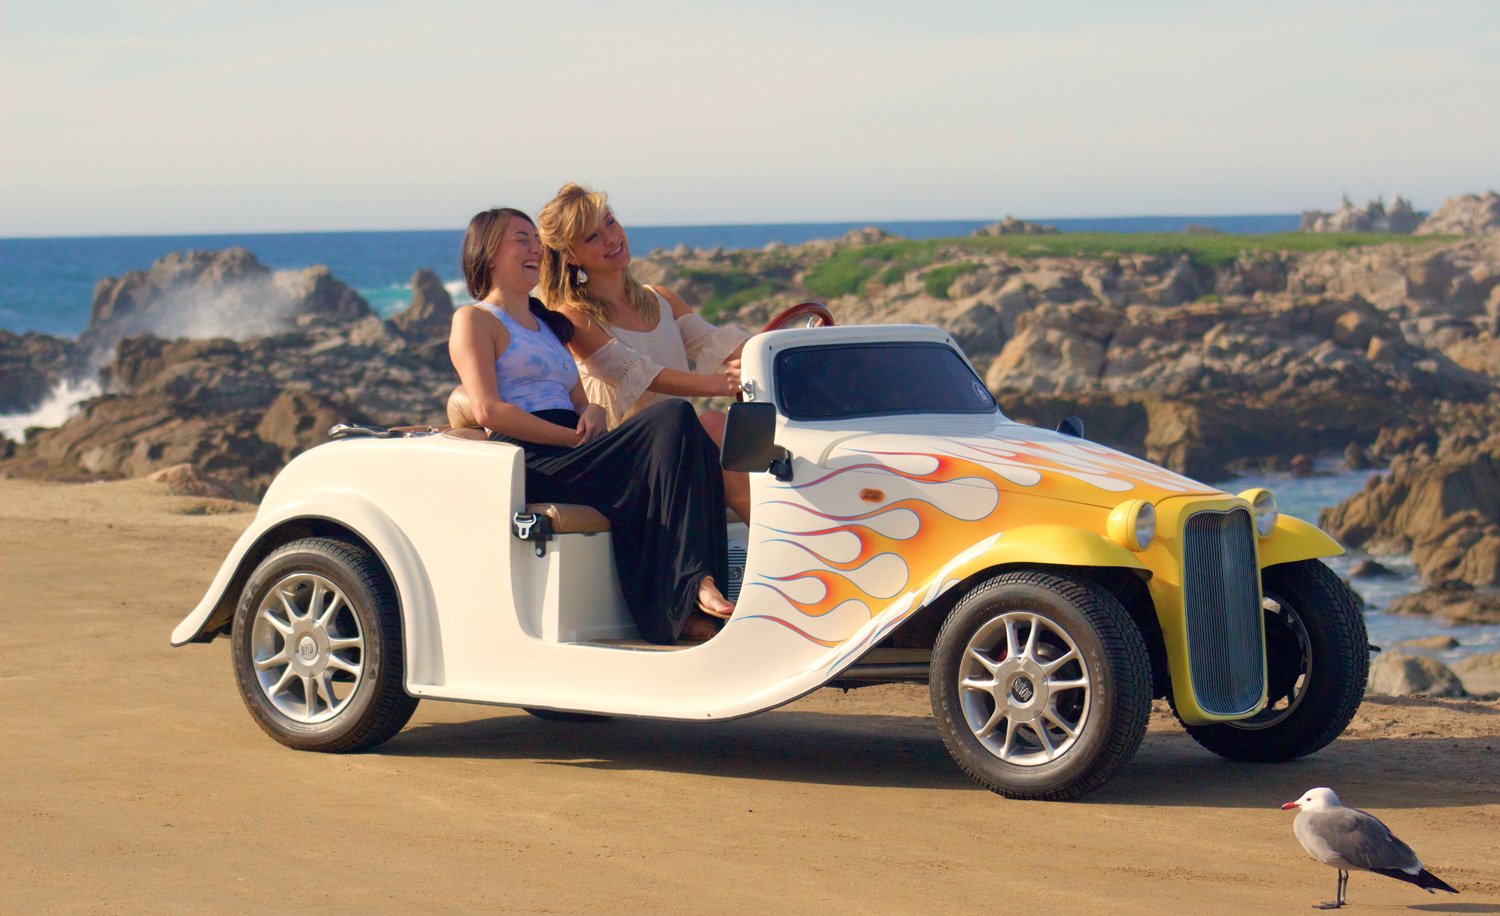 laughing in a sea car roadster